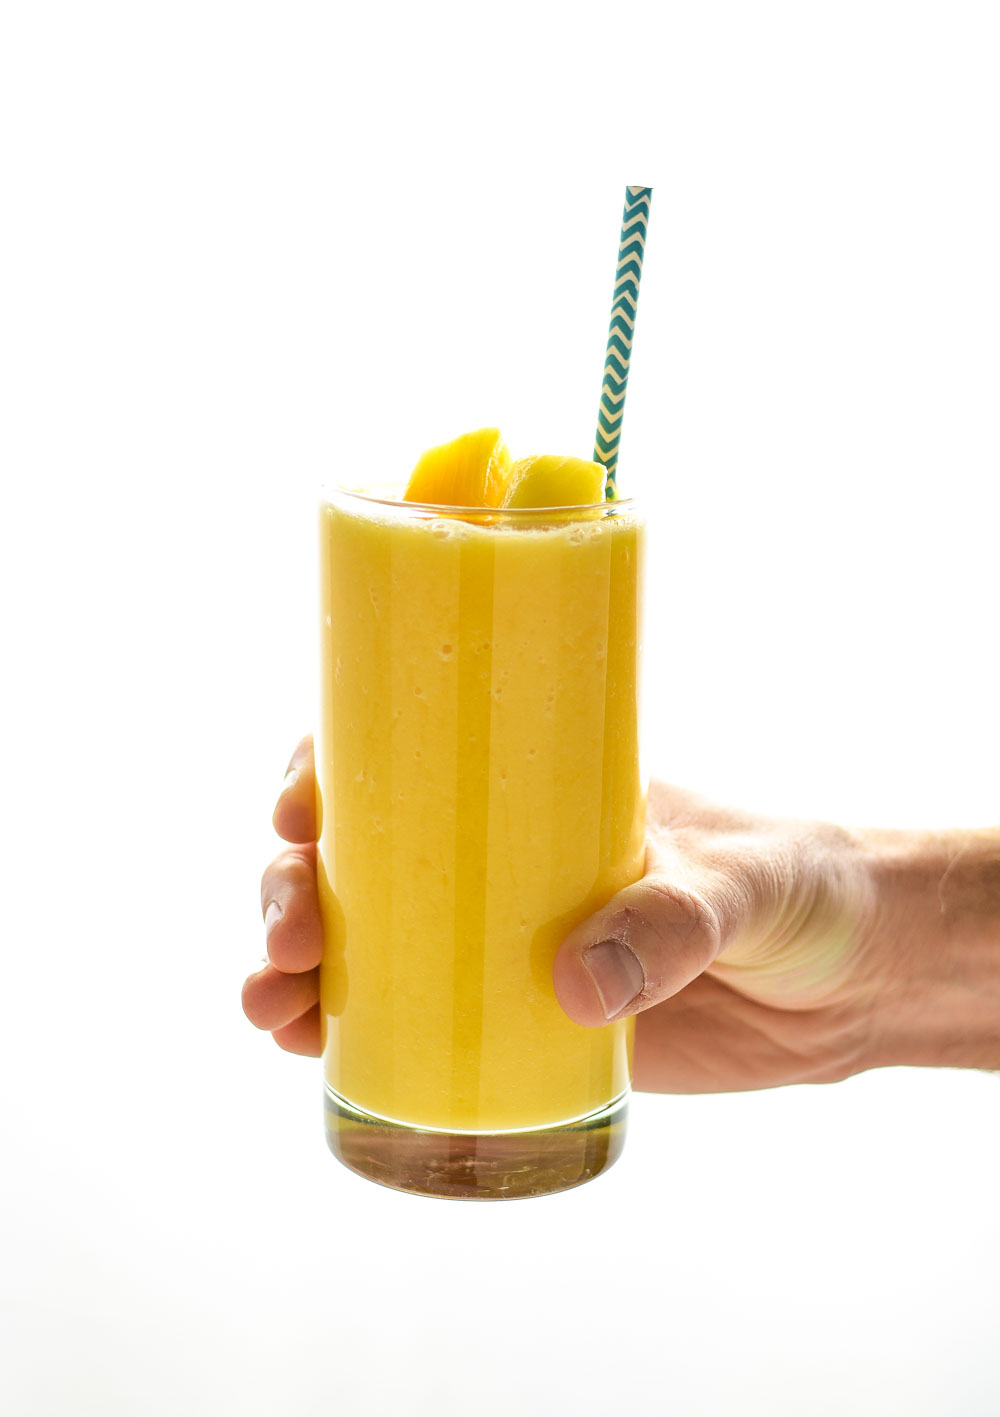 Orange pineapple smoothies are a great and refreshing way to start the day!